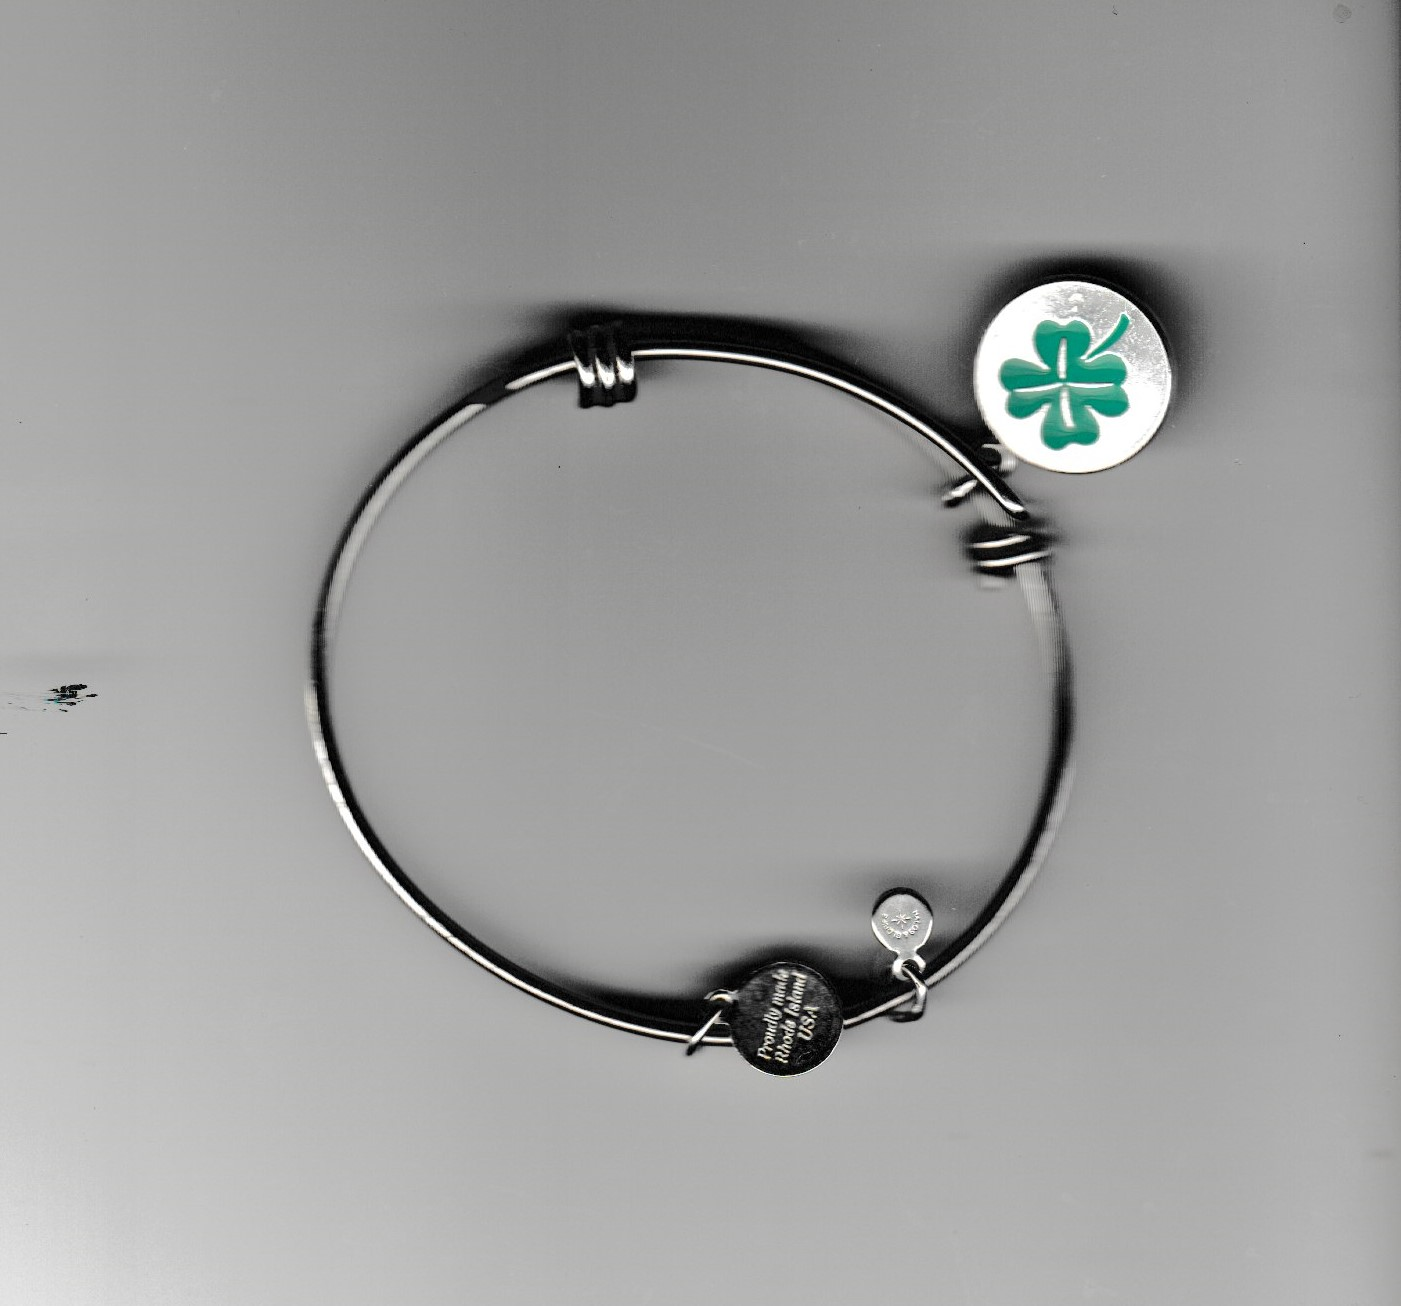 Silver bracelet with Clover charm by Halos & GLories / Made in USA American